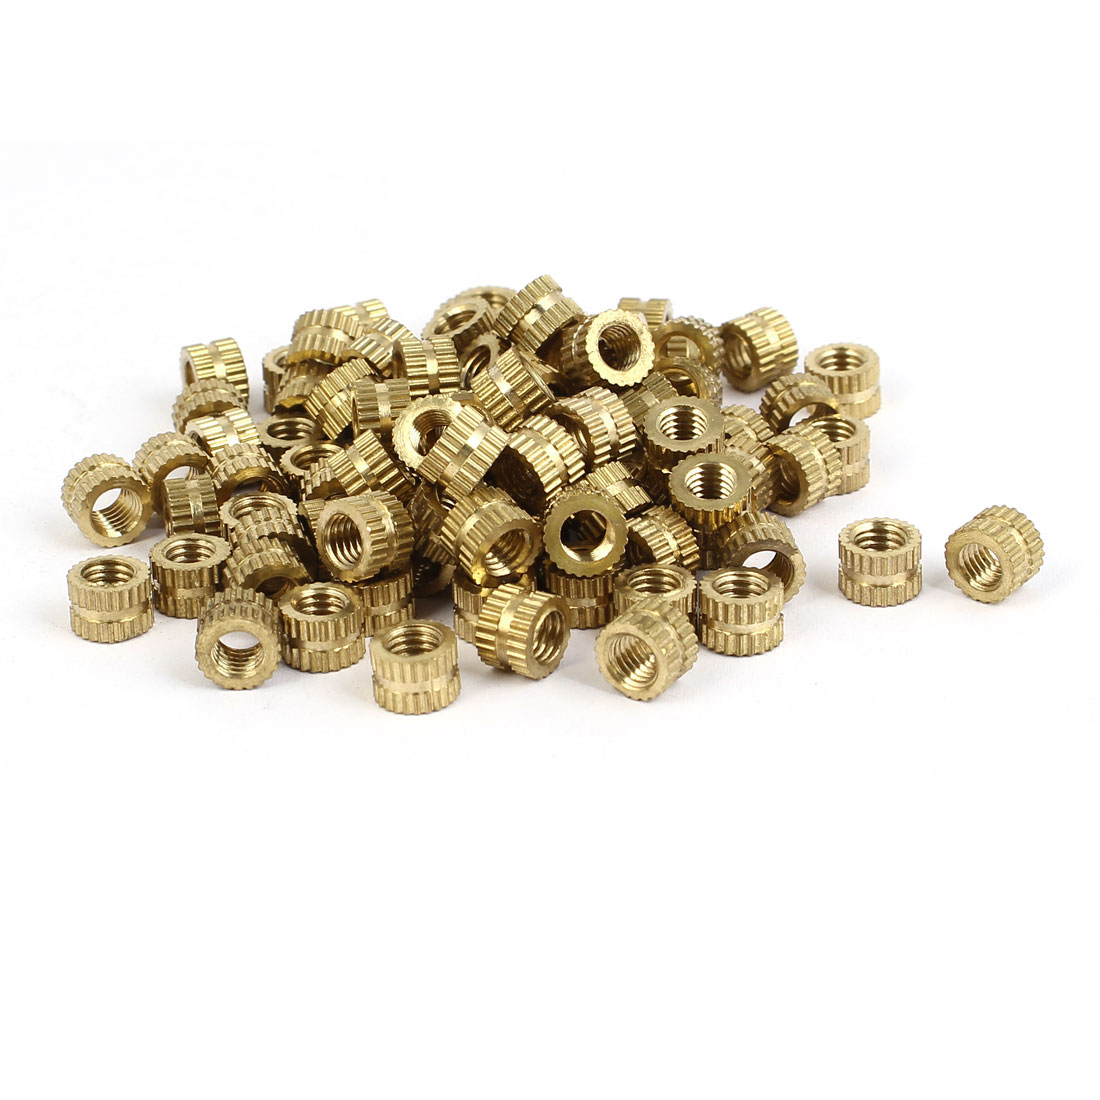 M5 x 5mm Female Thread Brass Knurled Threaded Round Insert Embedded Nuts 100PCS